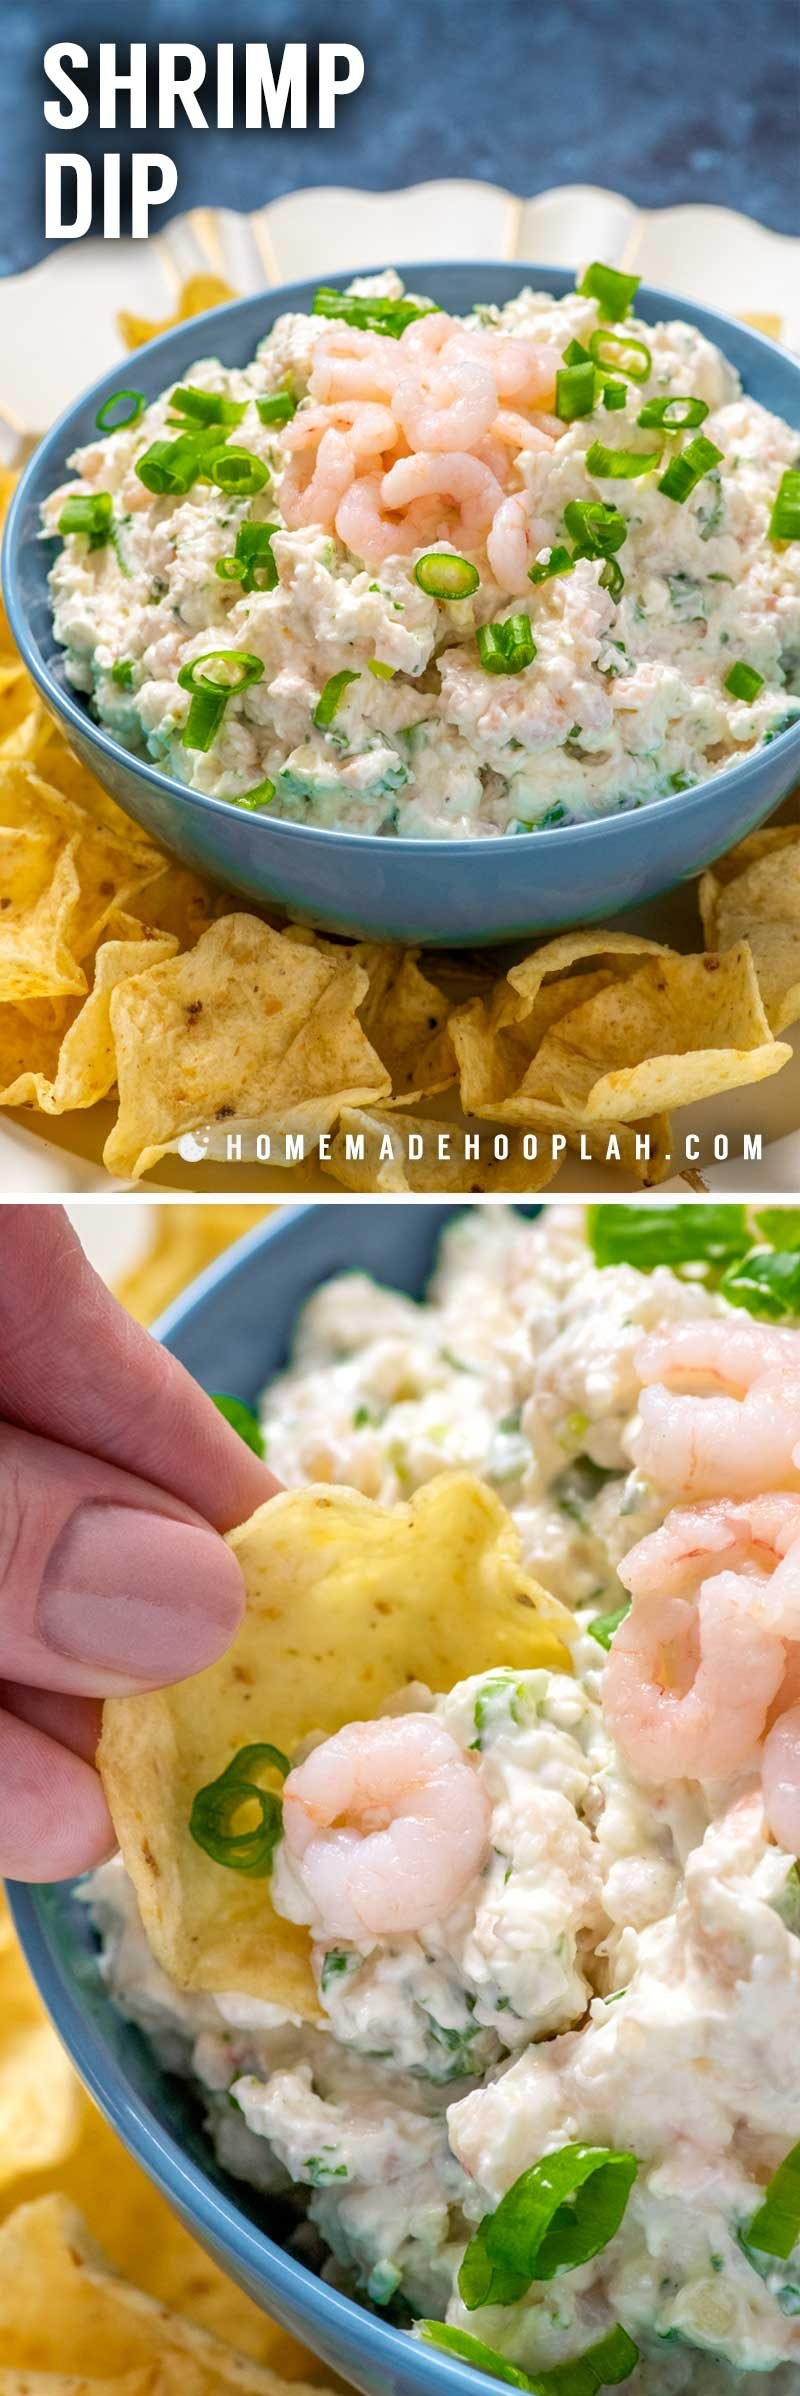 Cold shrimp dip recipe made with mayonnaise, cream cheese, and herbs.